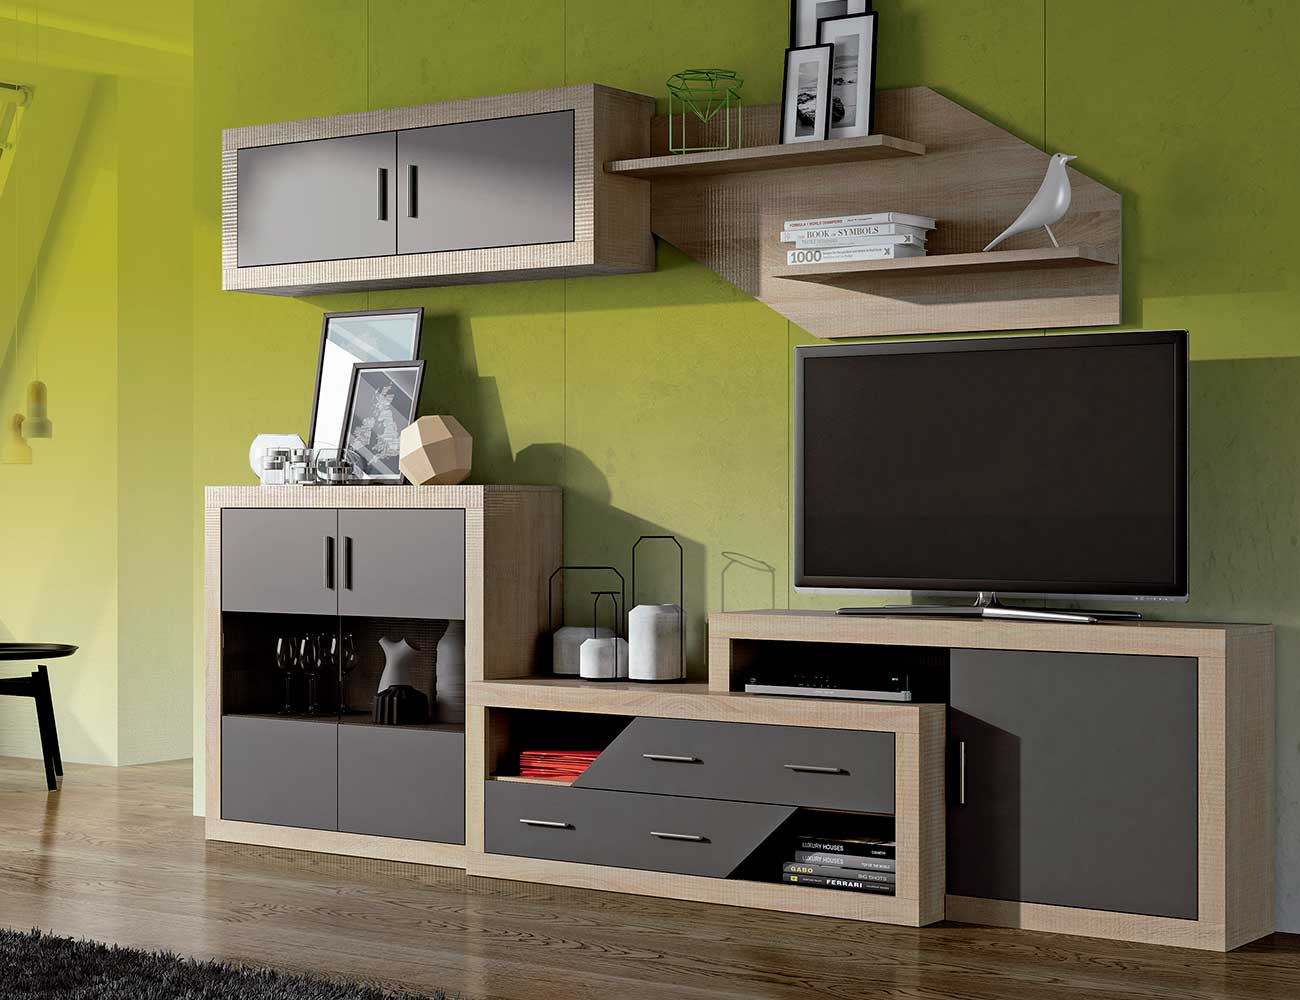 Mueble salon moderno bodeguero cambrian grafito 300 cm1